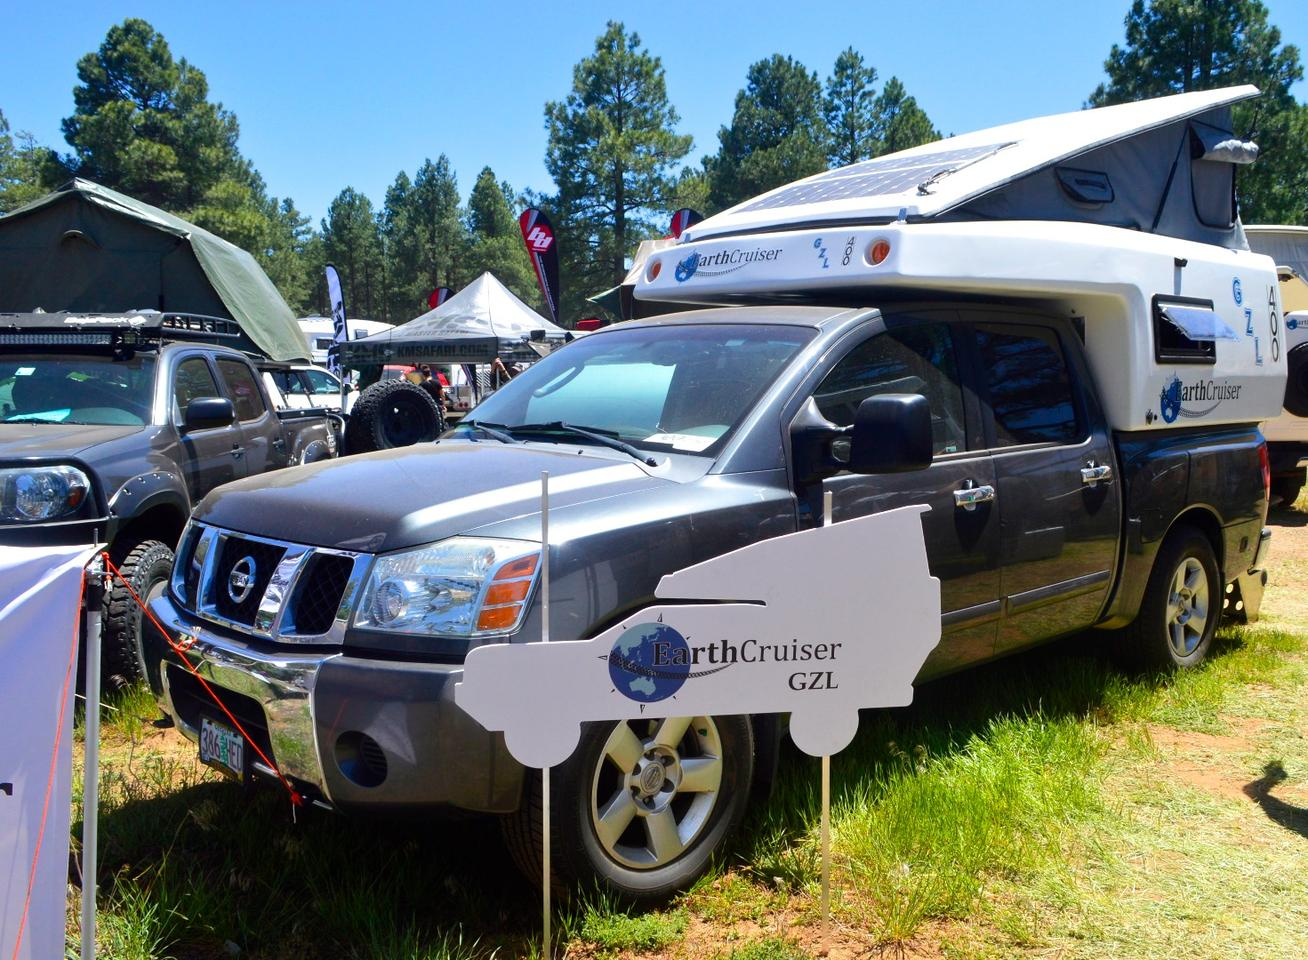 EarthCruiser shows its new GZL 400 at Overland Expo West 2017